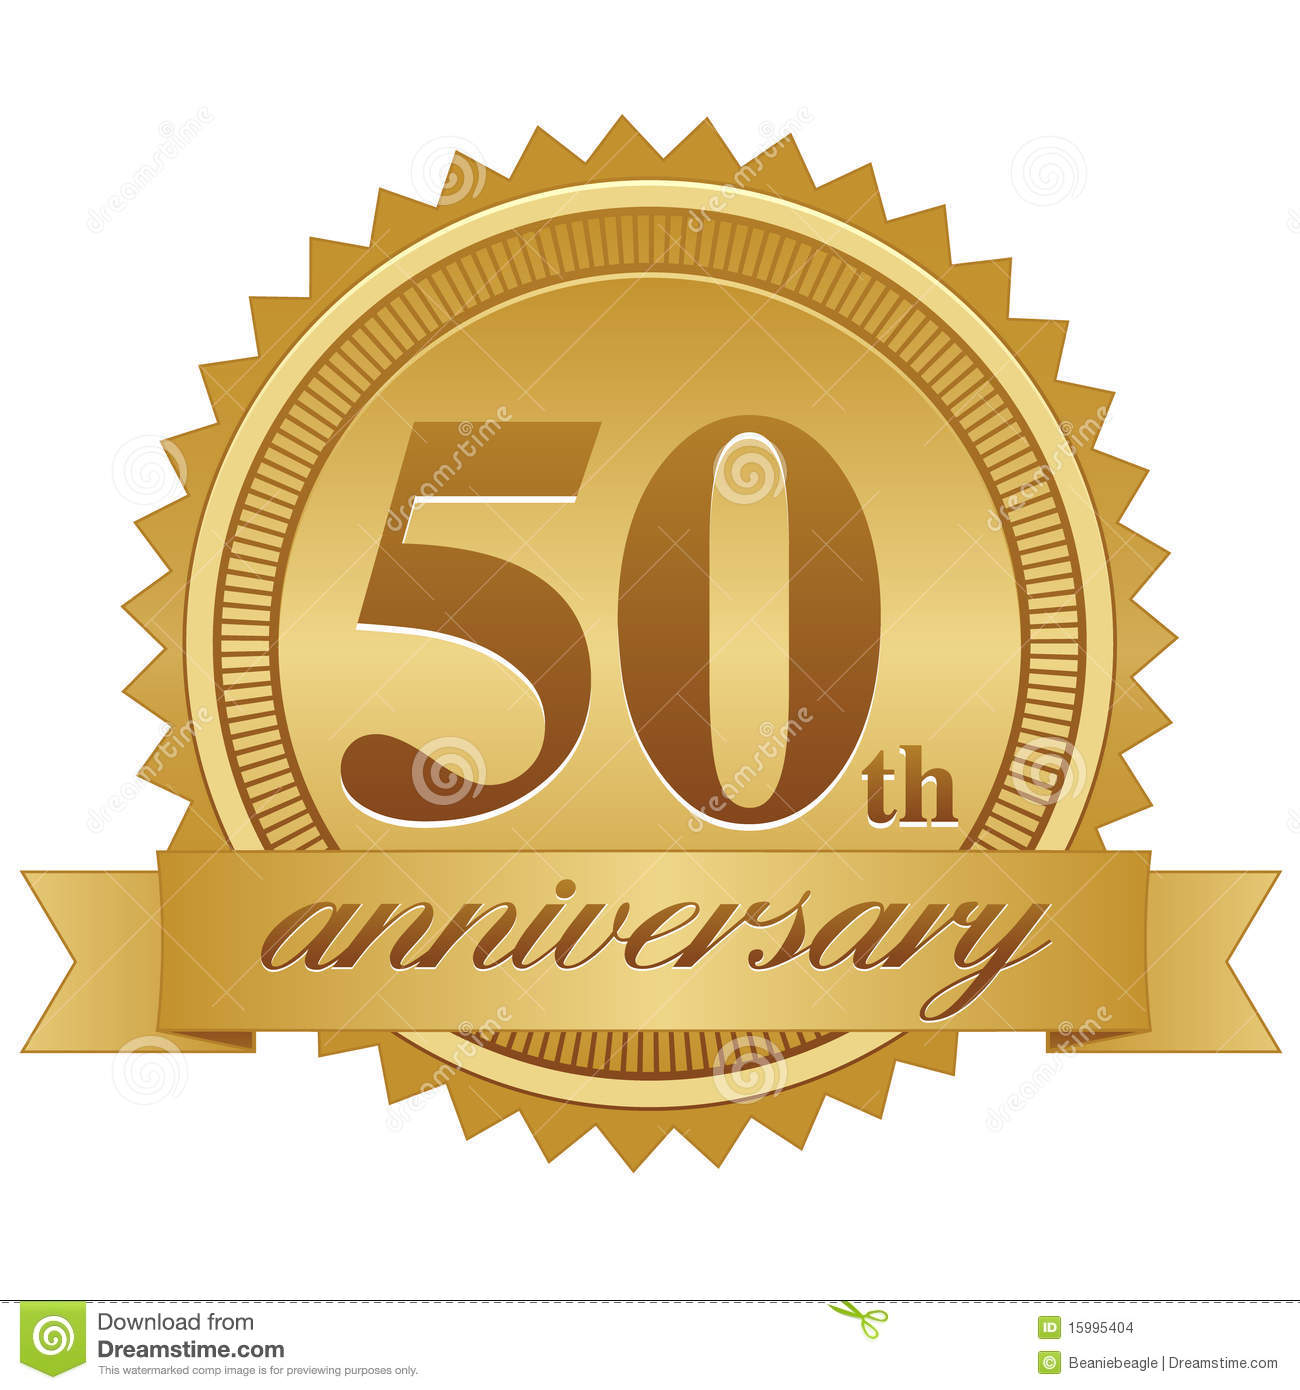 50th Wedding Anniversary Graphics: 50th Business Anniversary Clipart